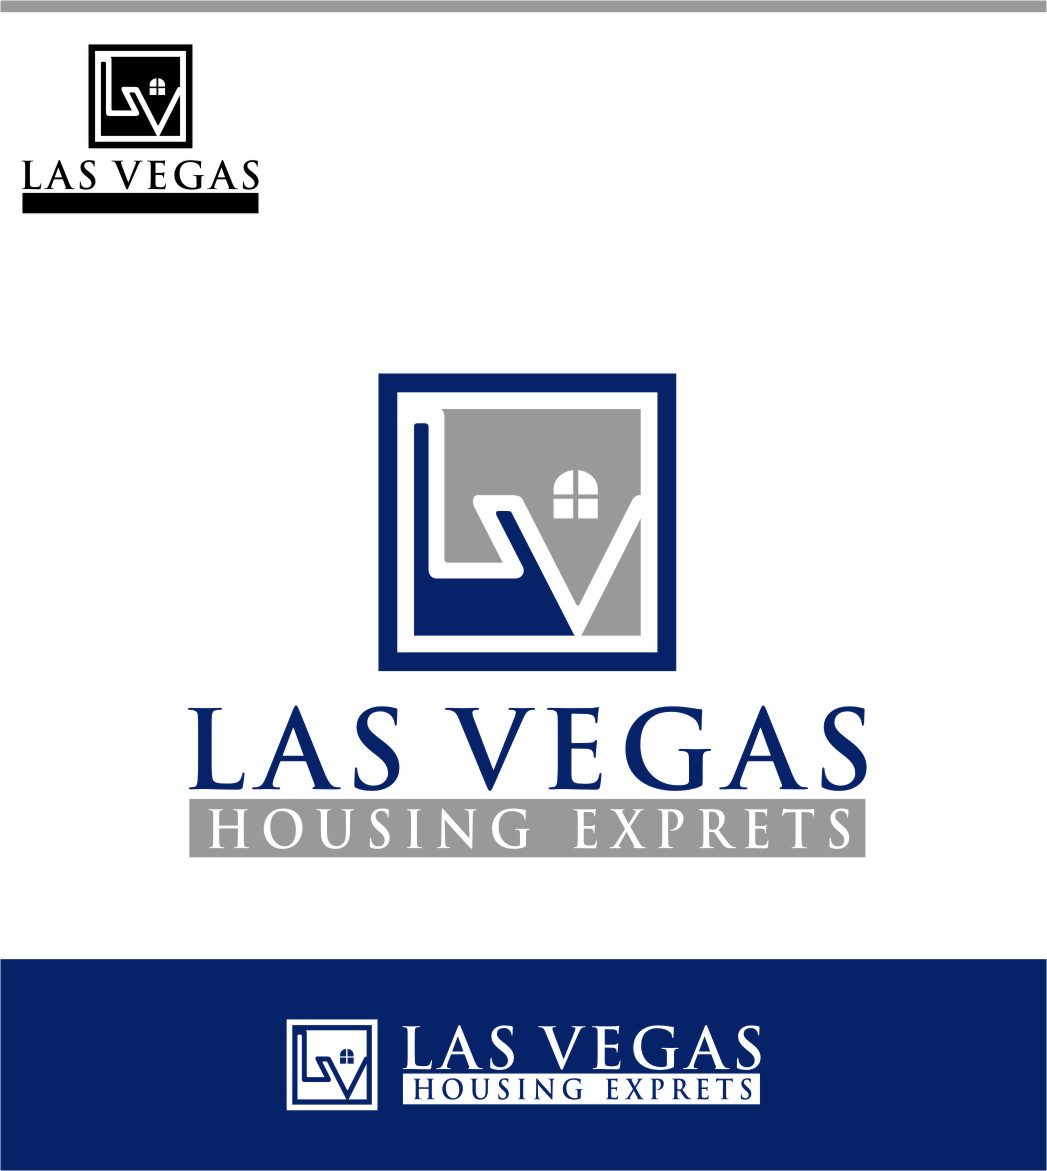 Logo Design by Ngepet_art - Entry No. 67 in the Logo Design Contest Las Vegas Housing Experts Logo Design.